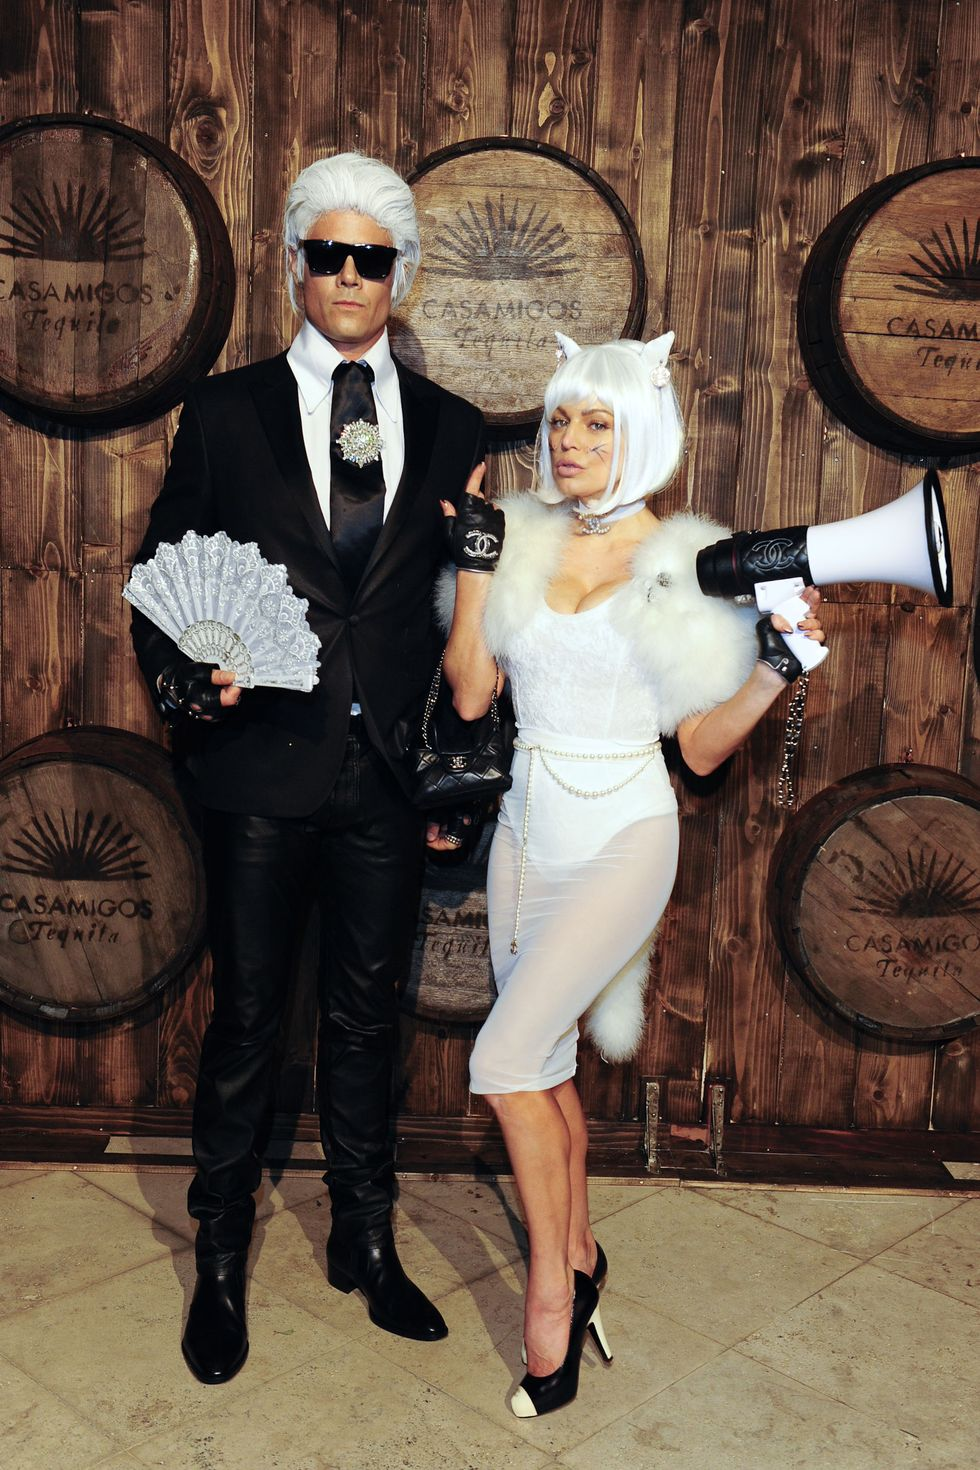 Josh Duhammel and Fergie as Karl Lagerfeld and Choupette was beautiful! He's wearing Karl's iconic white wig, black suit, with a fan in one hand. Fergie is in all white, with cat ears, a metallic white wig and a megaphone in one hand.